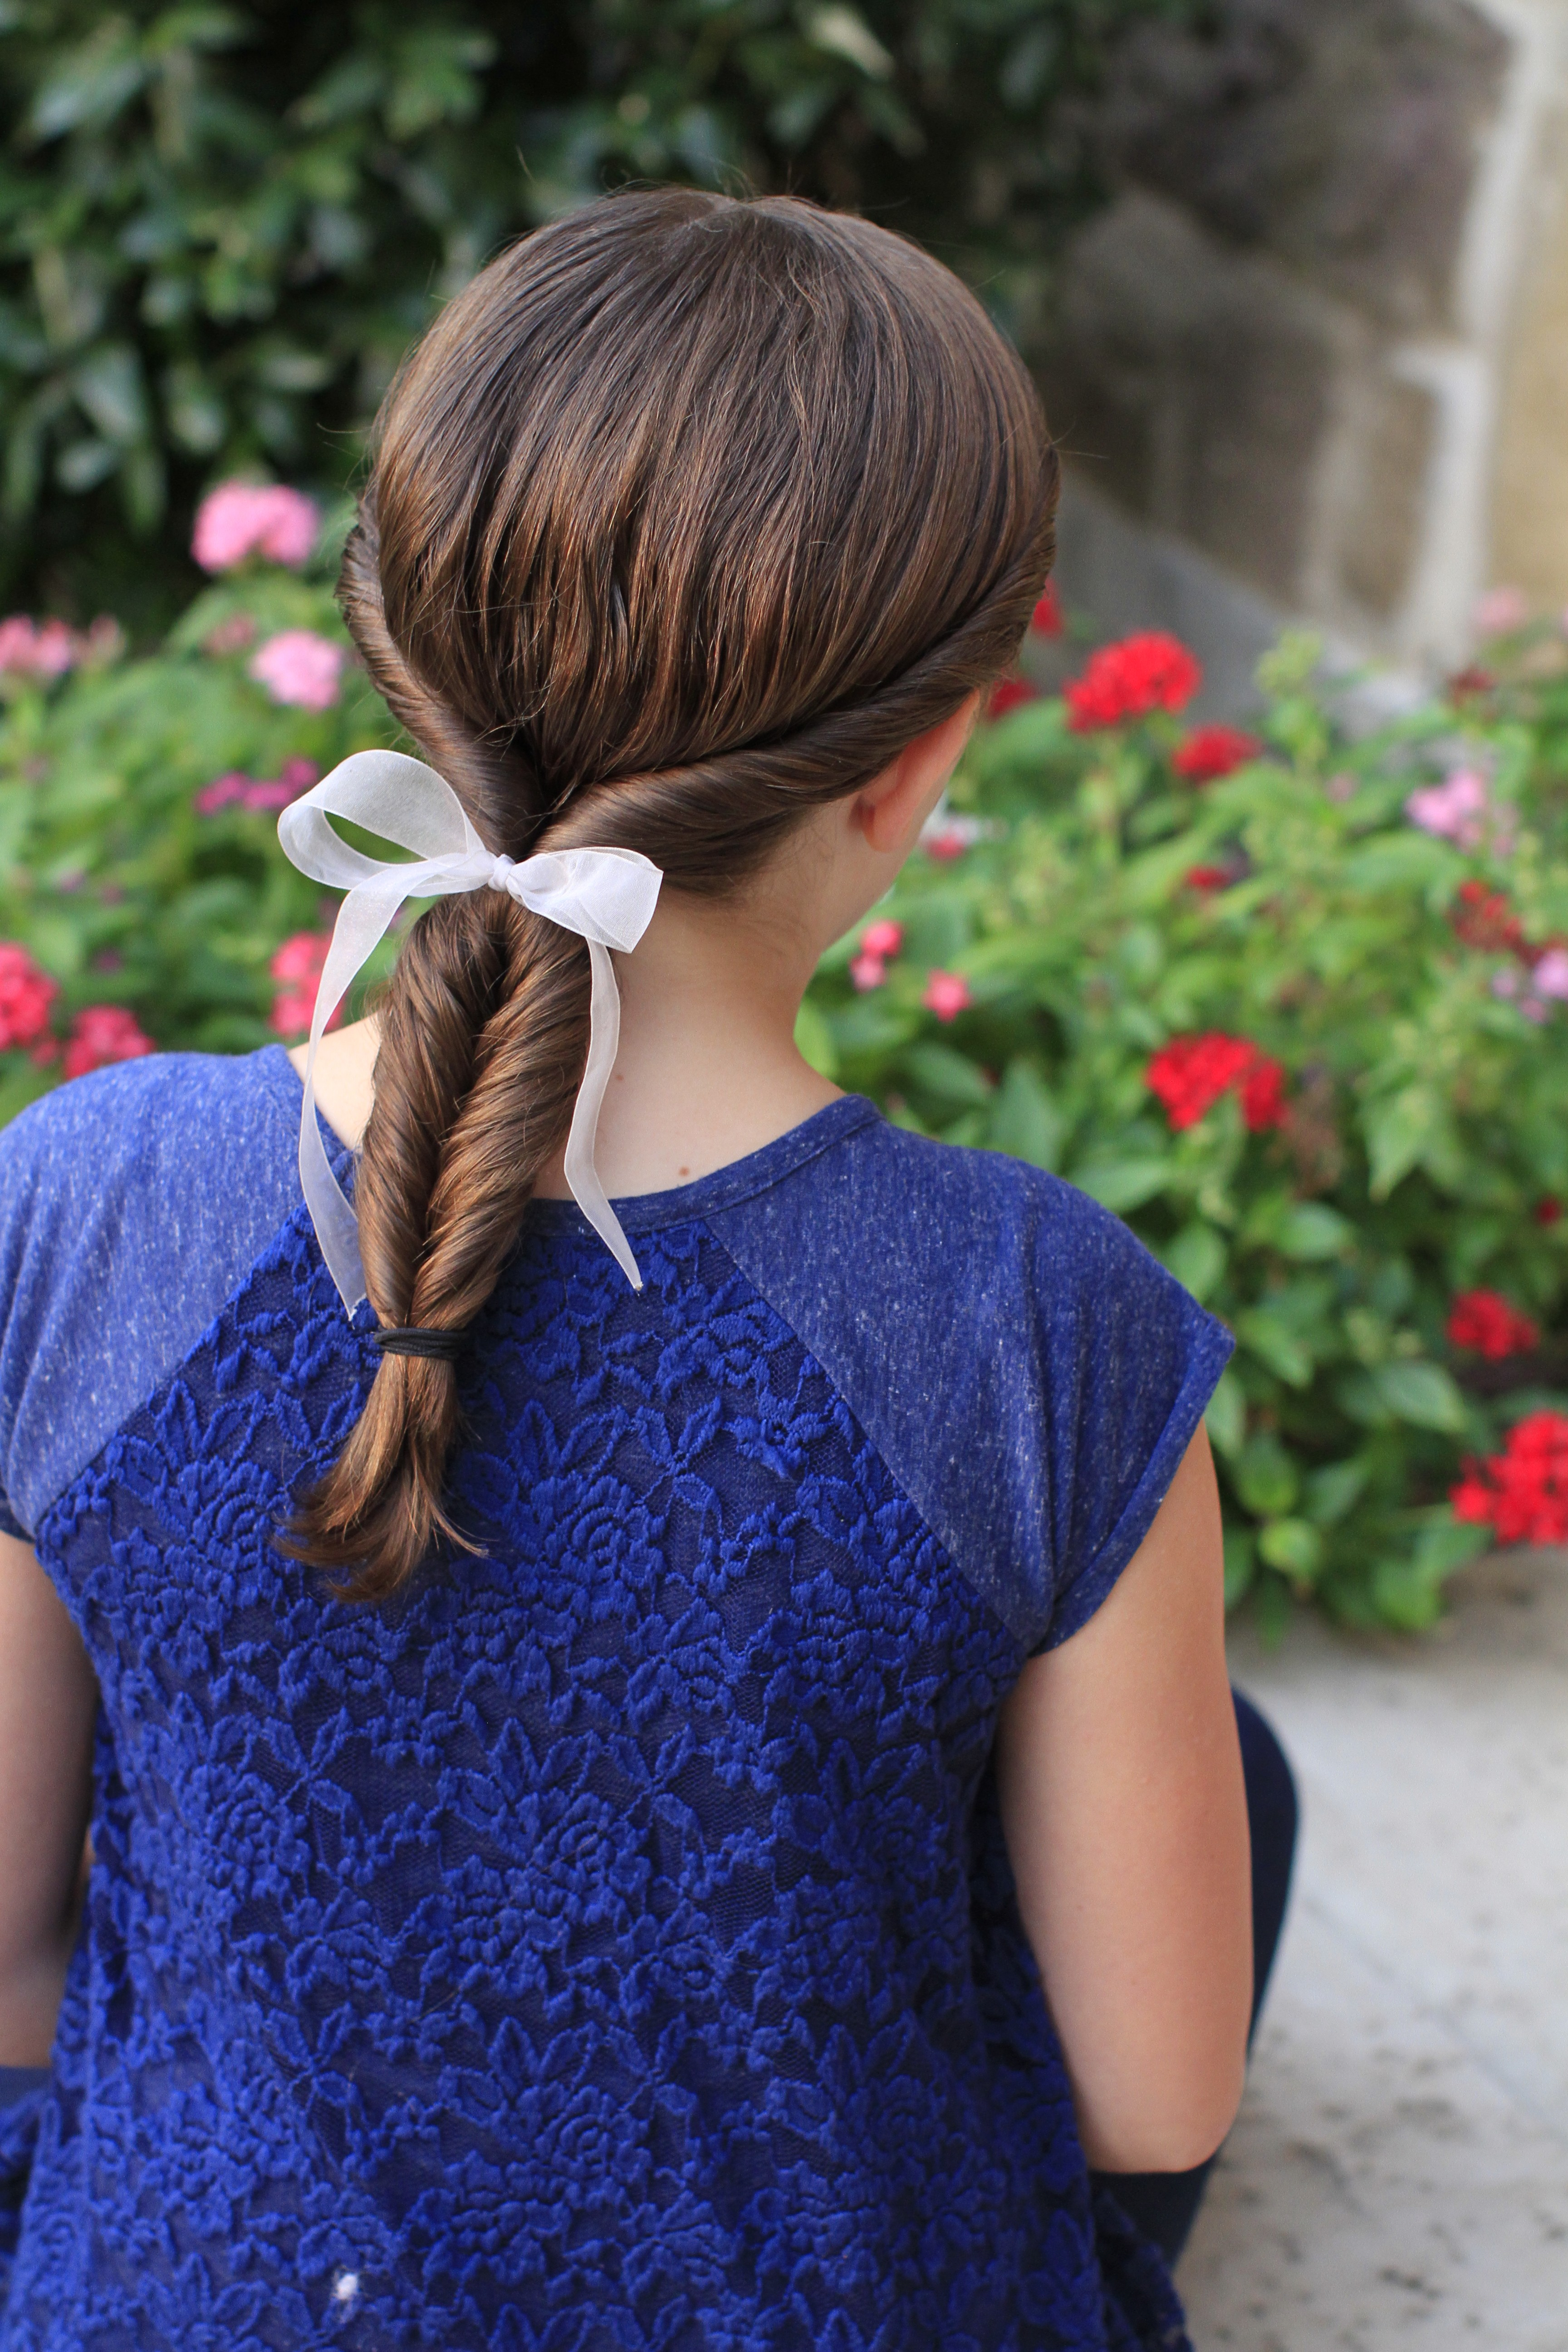 Hairstyles for Girls: Double-Twist Ponytail - Cute Girls ...